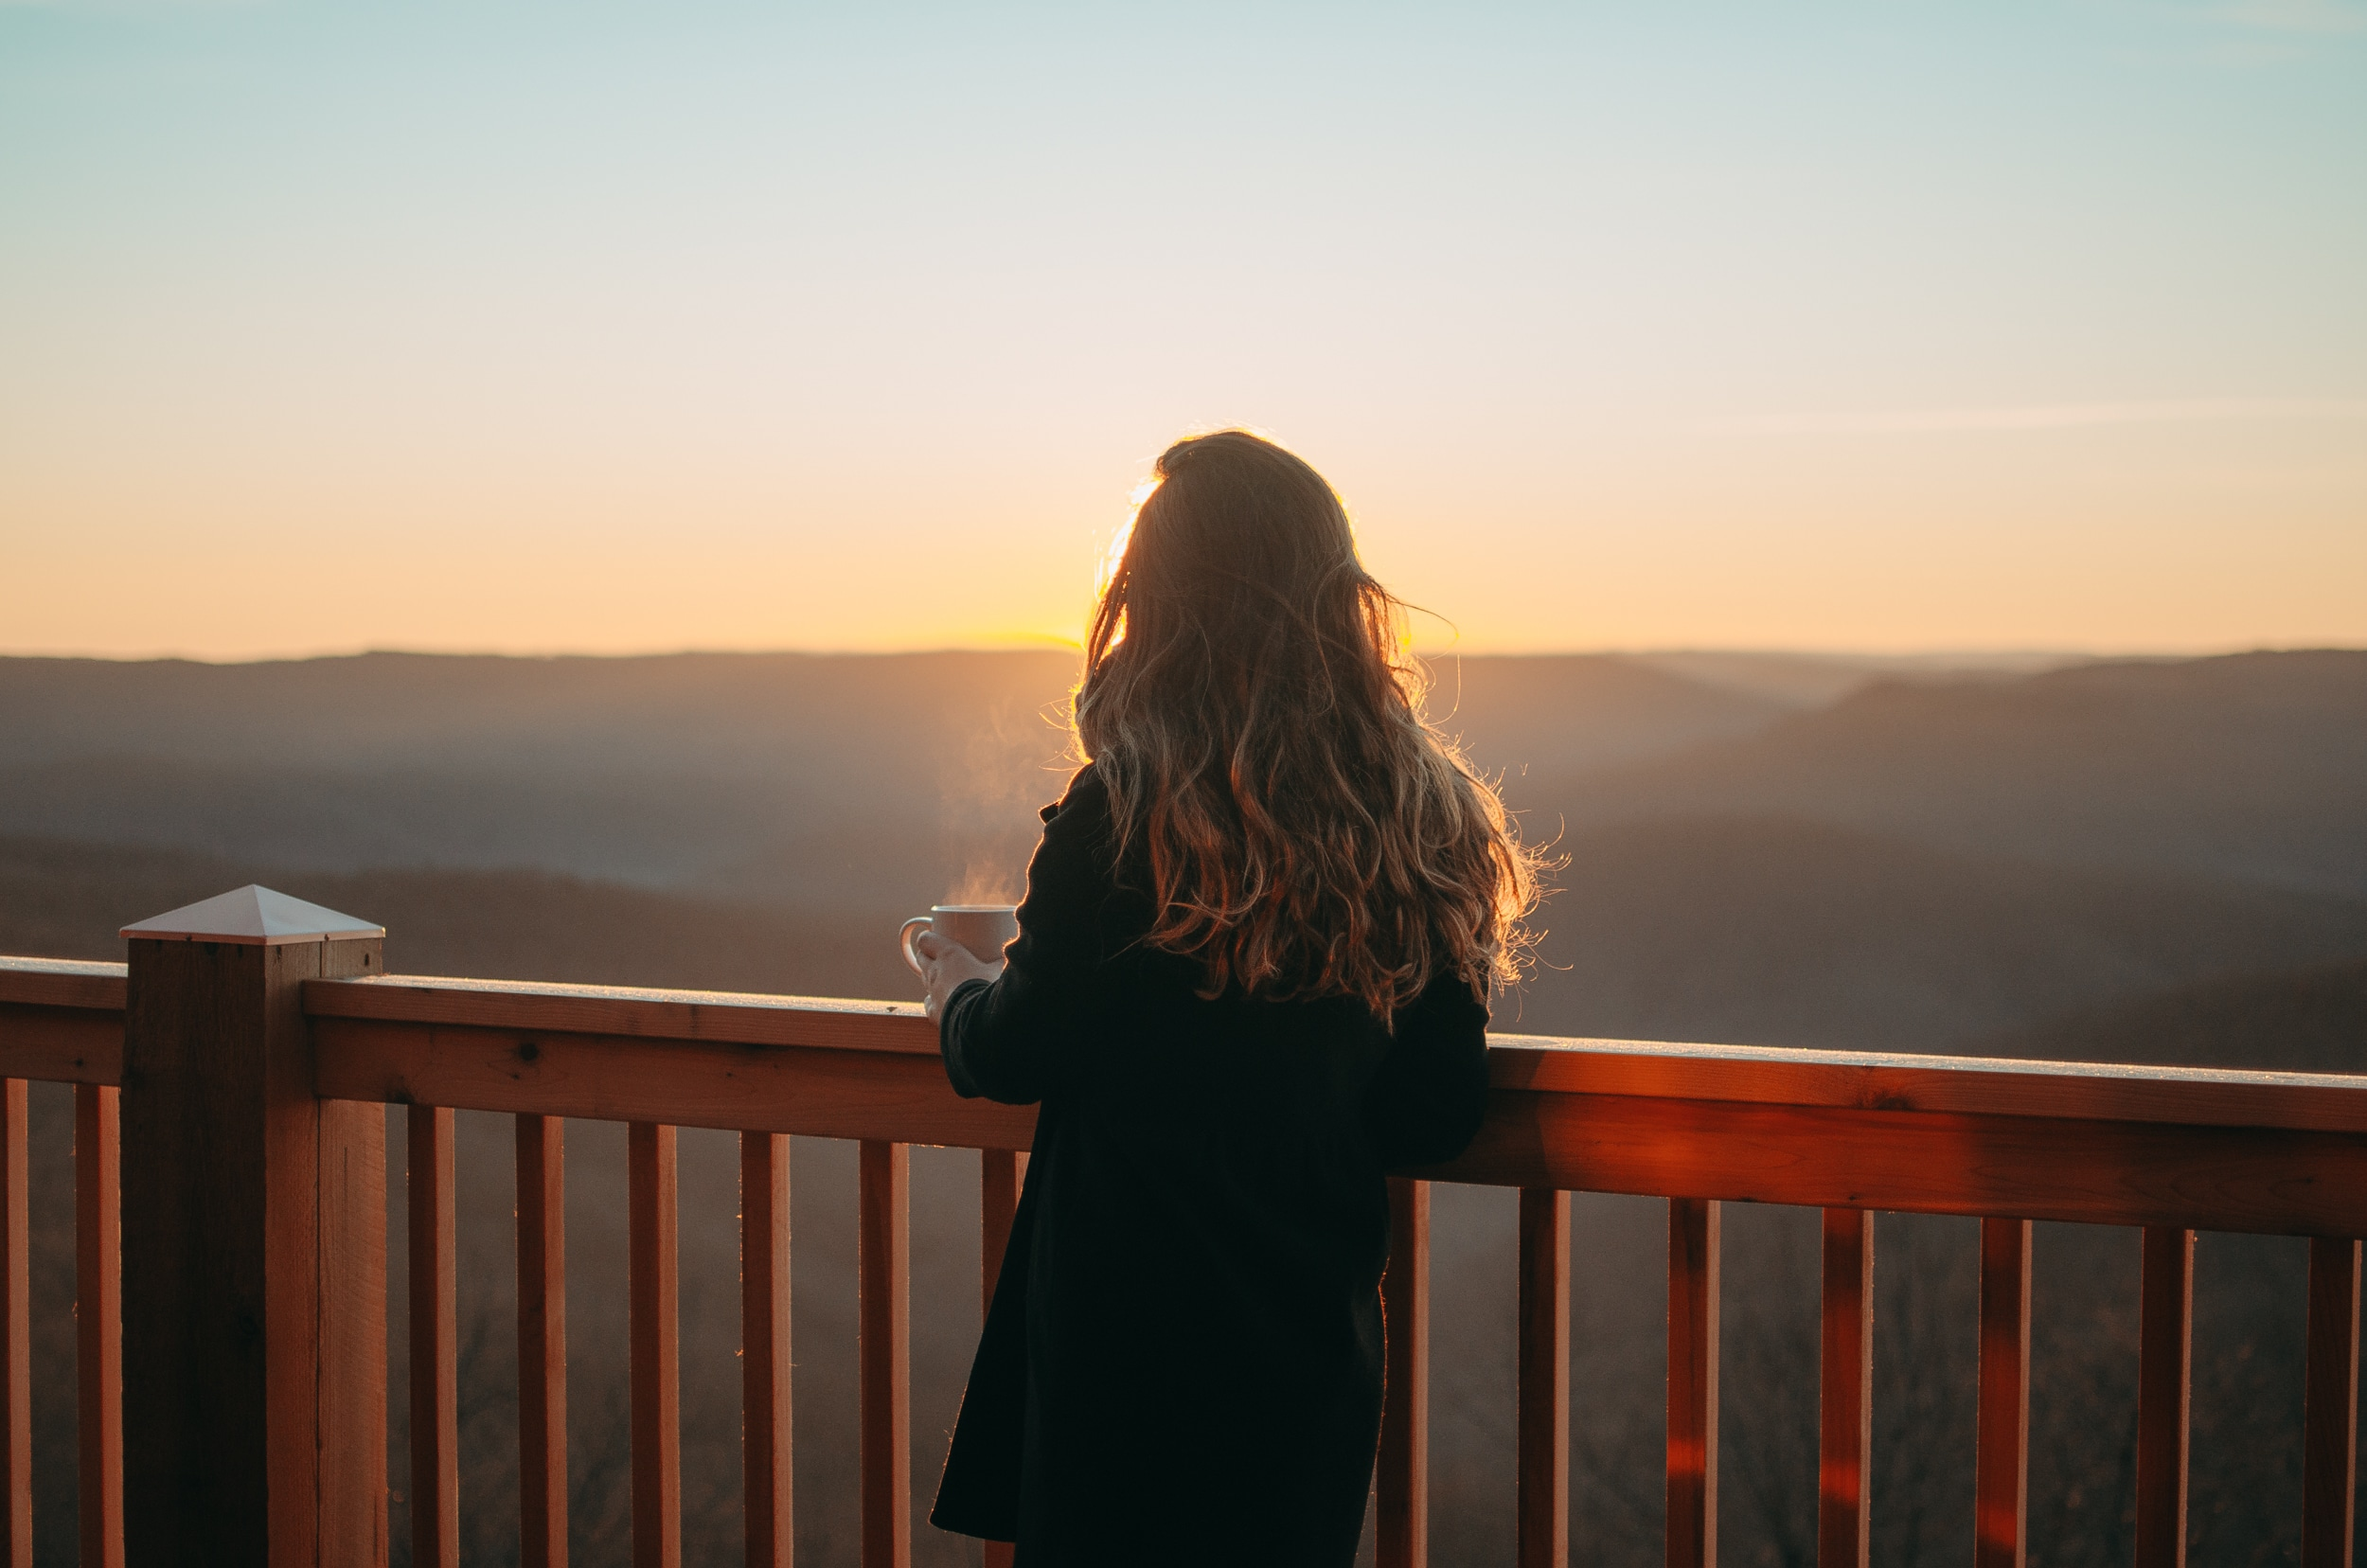 A woman with long brown hair enjoying a hot beverage and the view of the Buffalo River country from the cabin deck